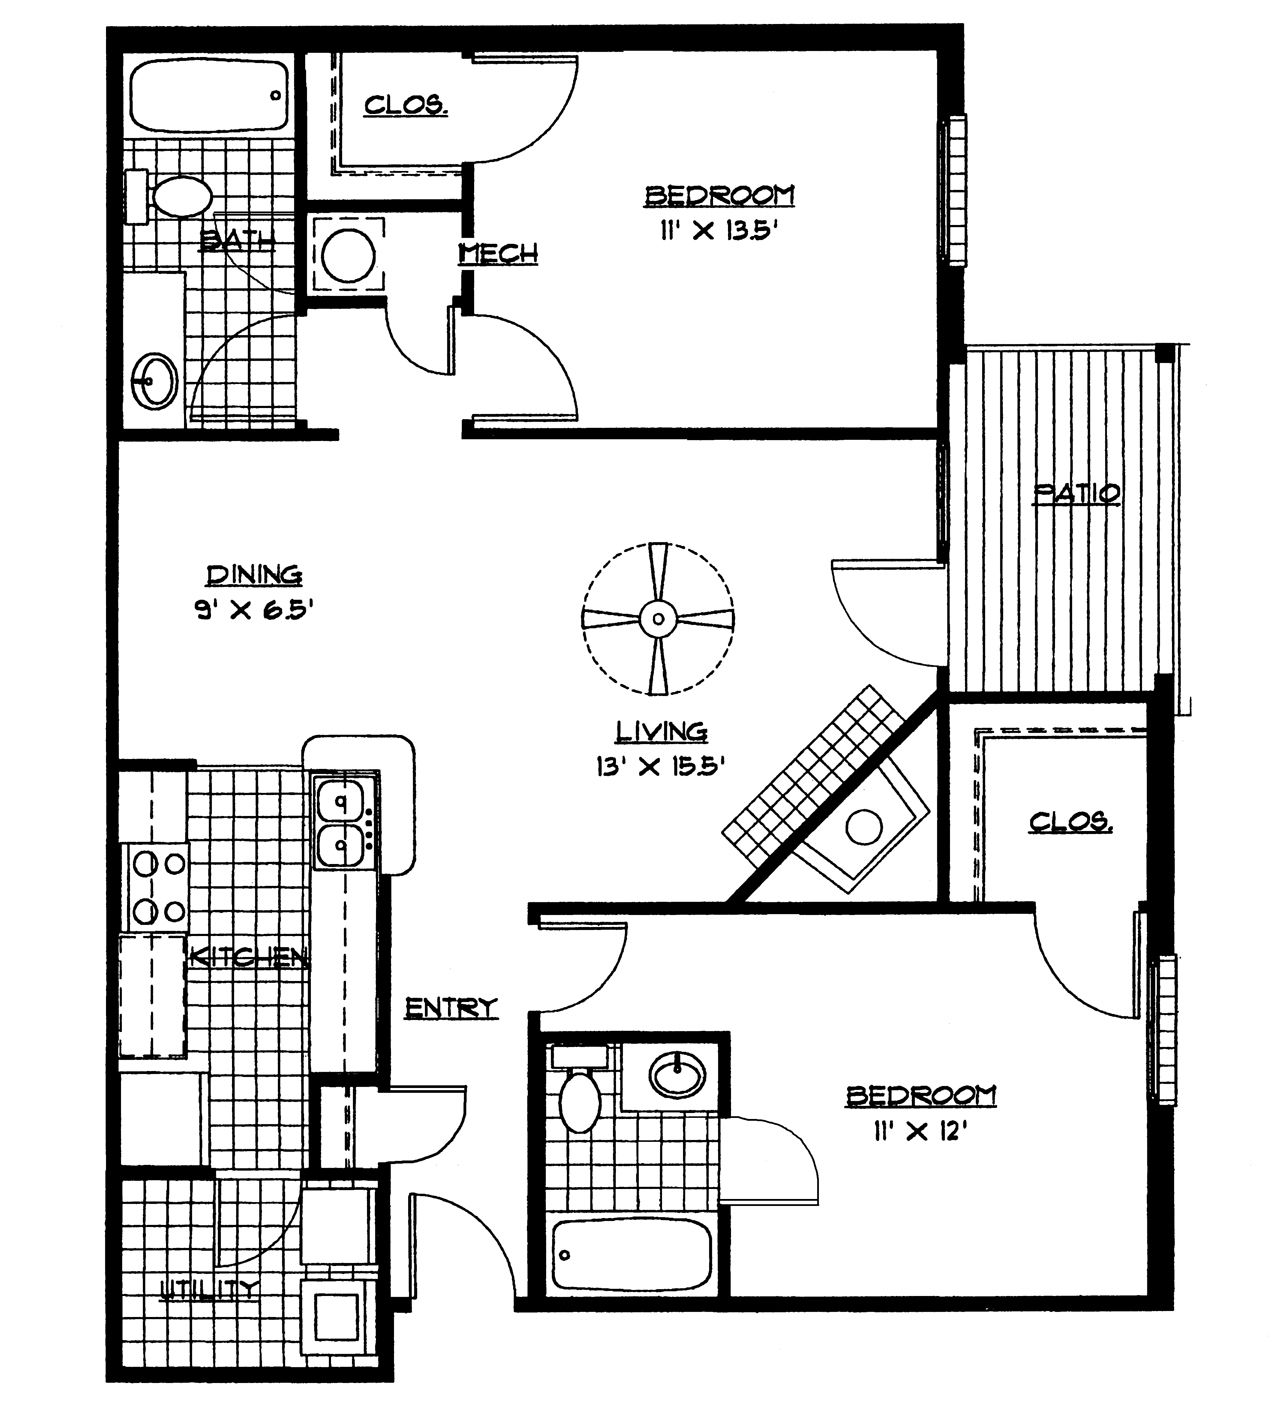 Small house floor plans 2 bedrooms bedroom floor plan for Floor plans online free